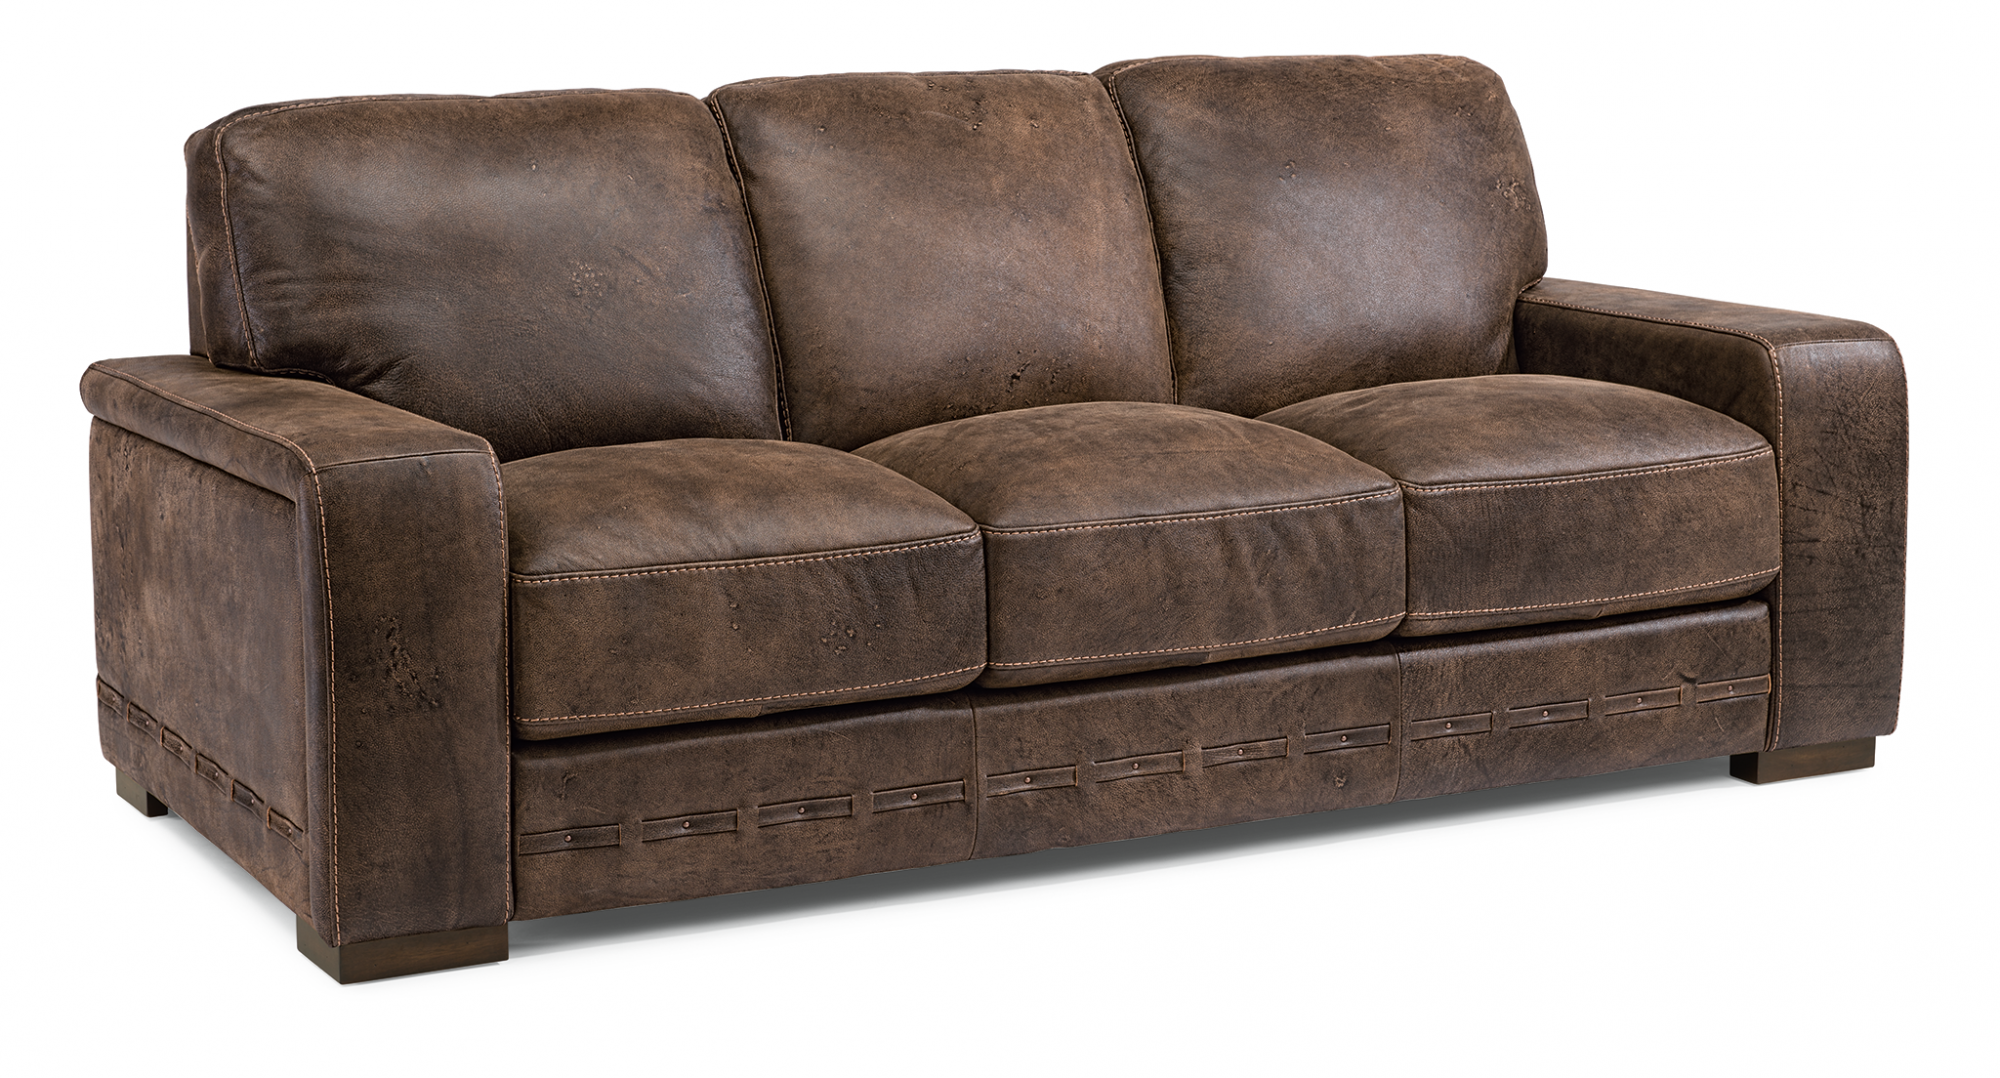 Sofas And Loveseats Reclining Sofas And Sleepers Flexsteel - Brushed leather sofa 2